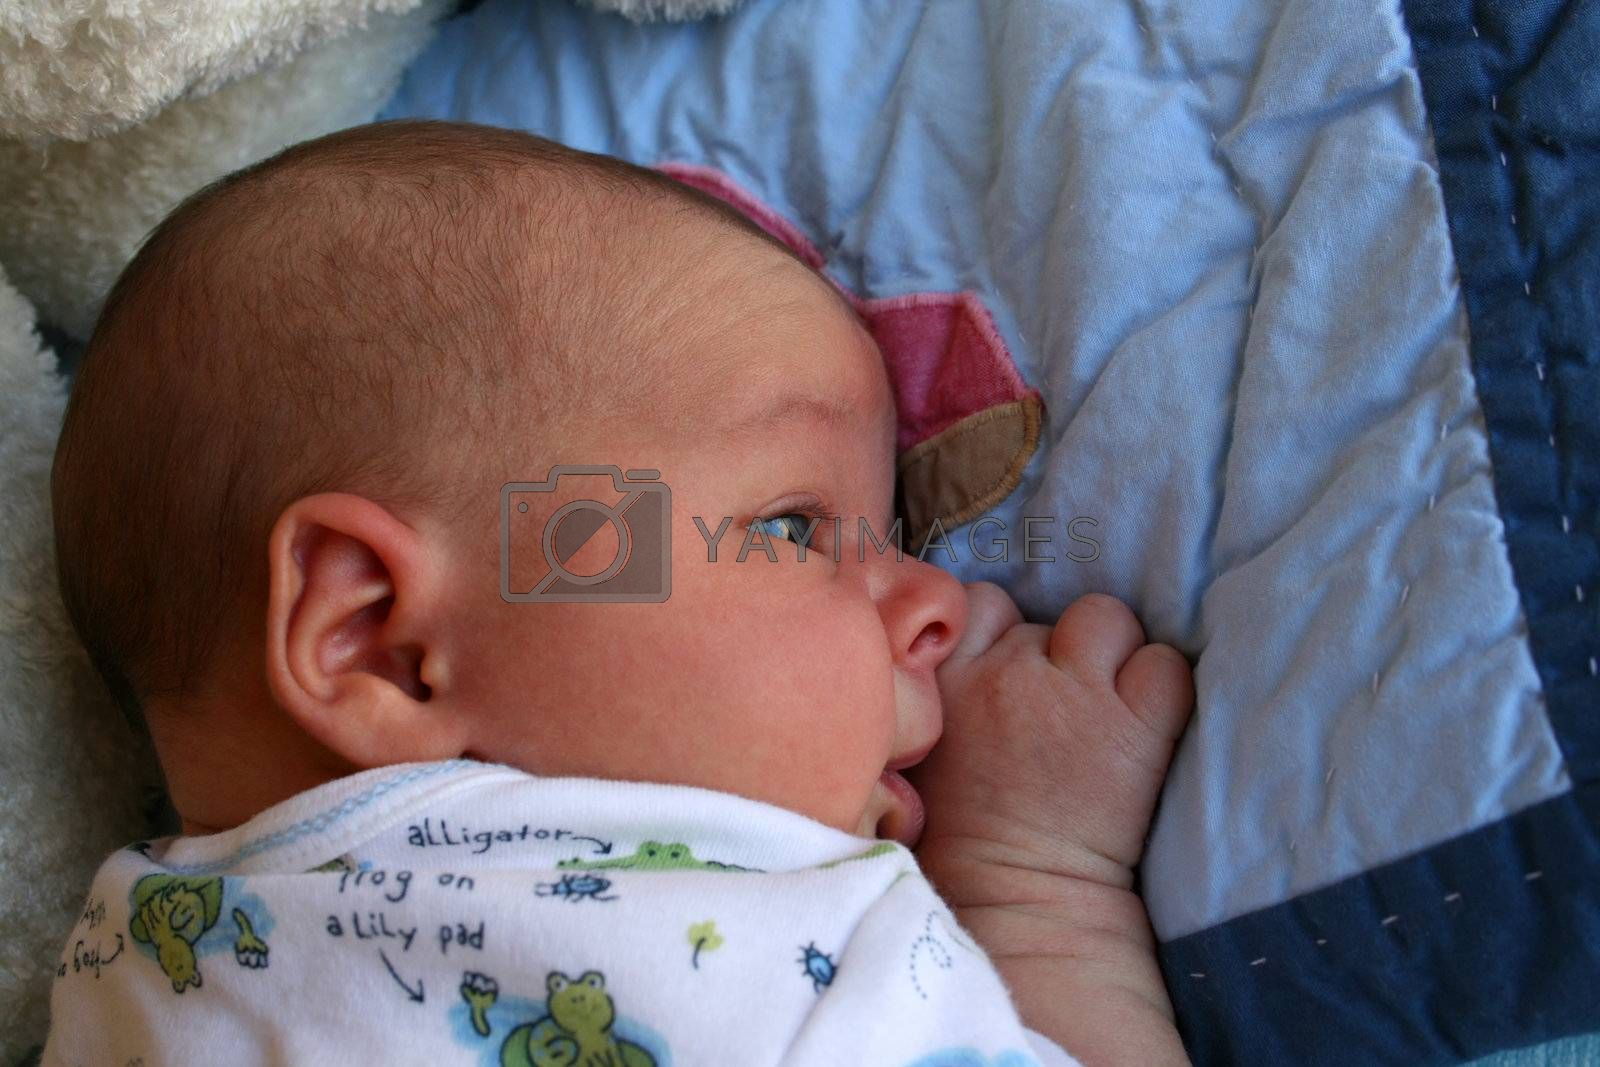 Week old baby boy on a blue blanket early in the morning